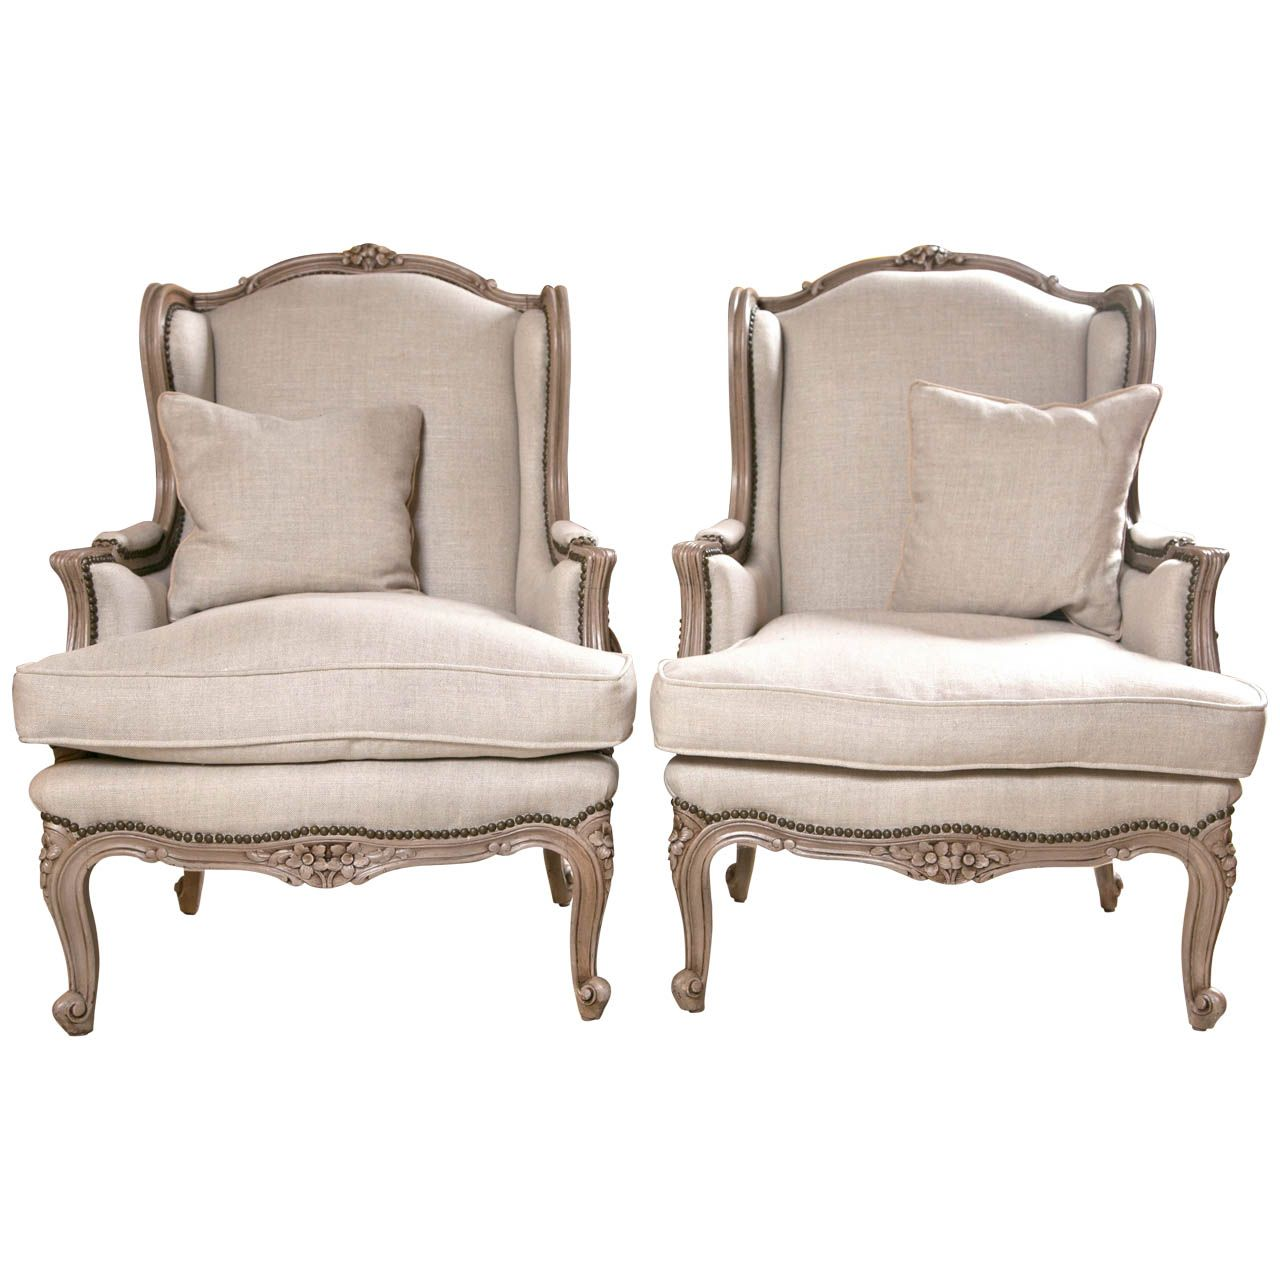 Pair of French Wingback Chairs In Linen Upholstery with Nail Heads ...